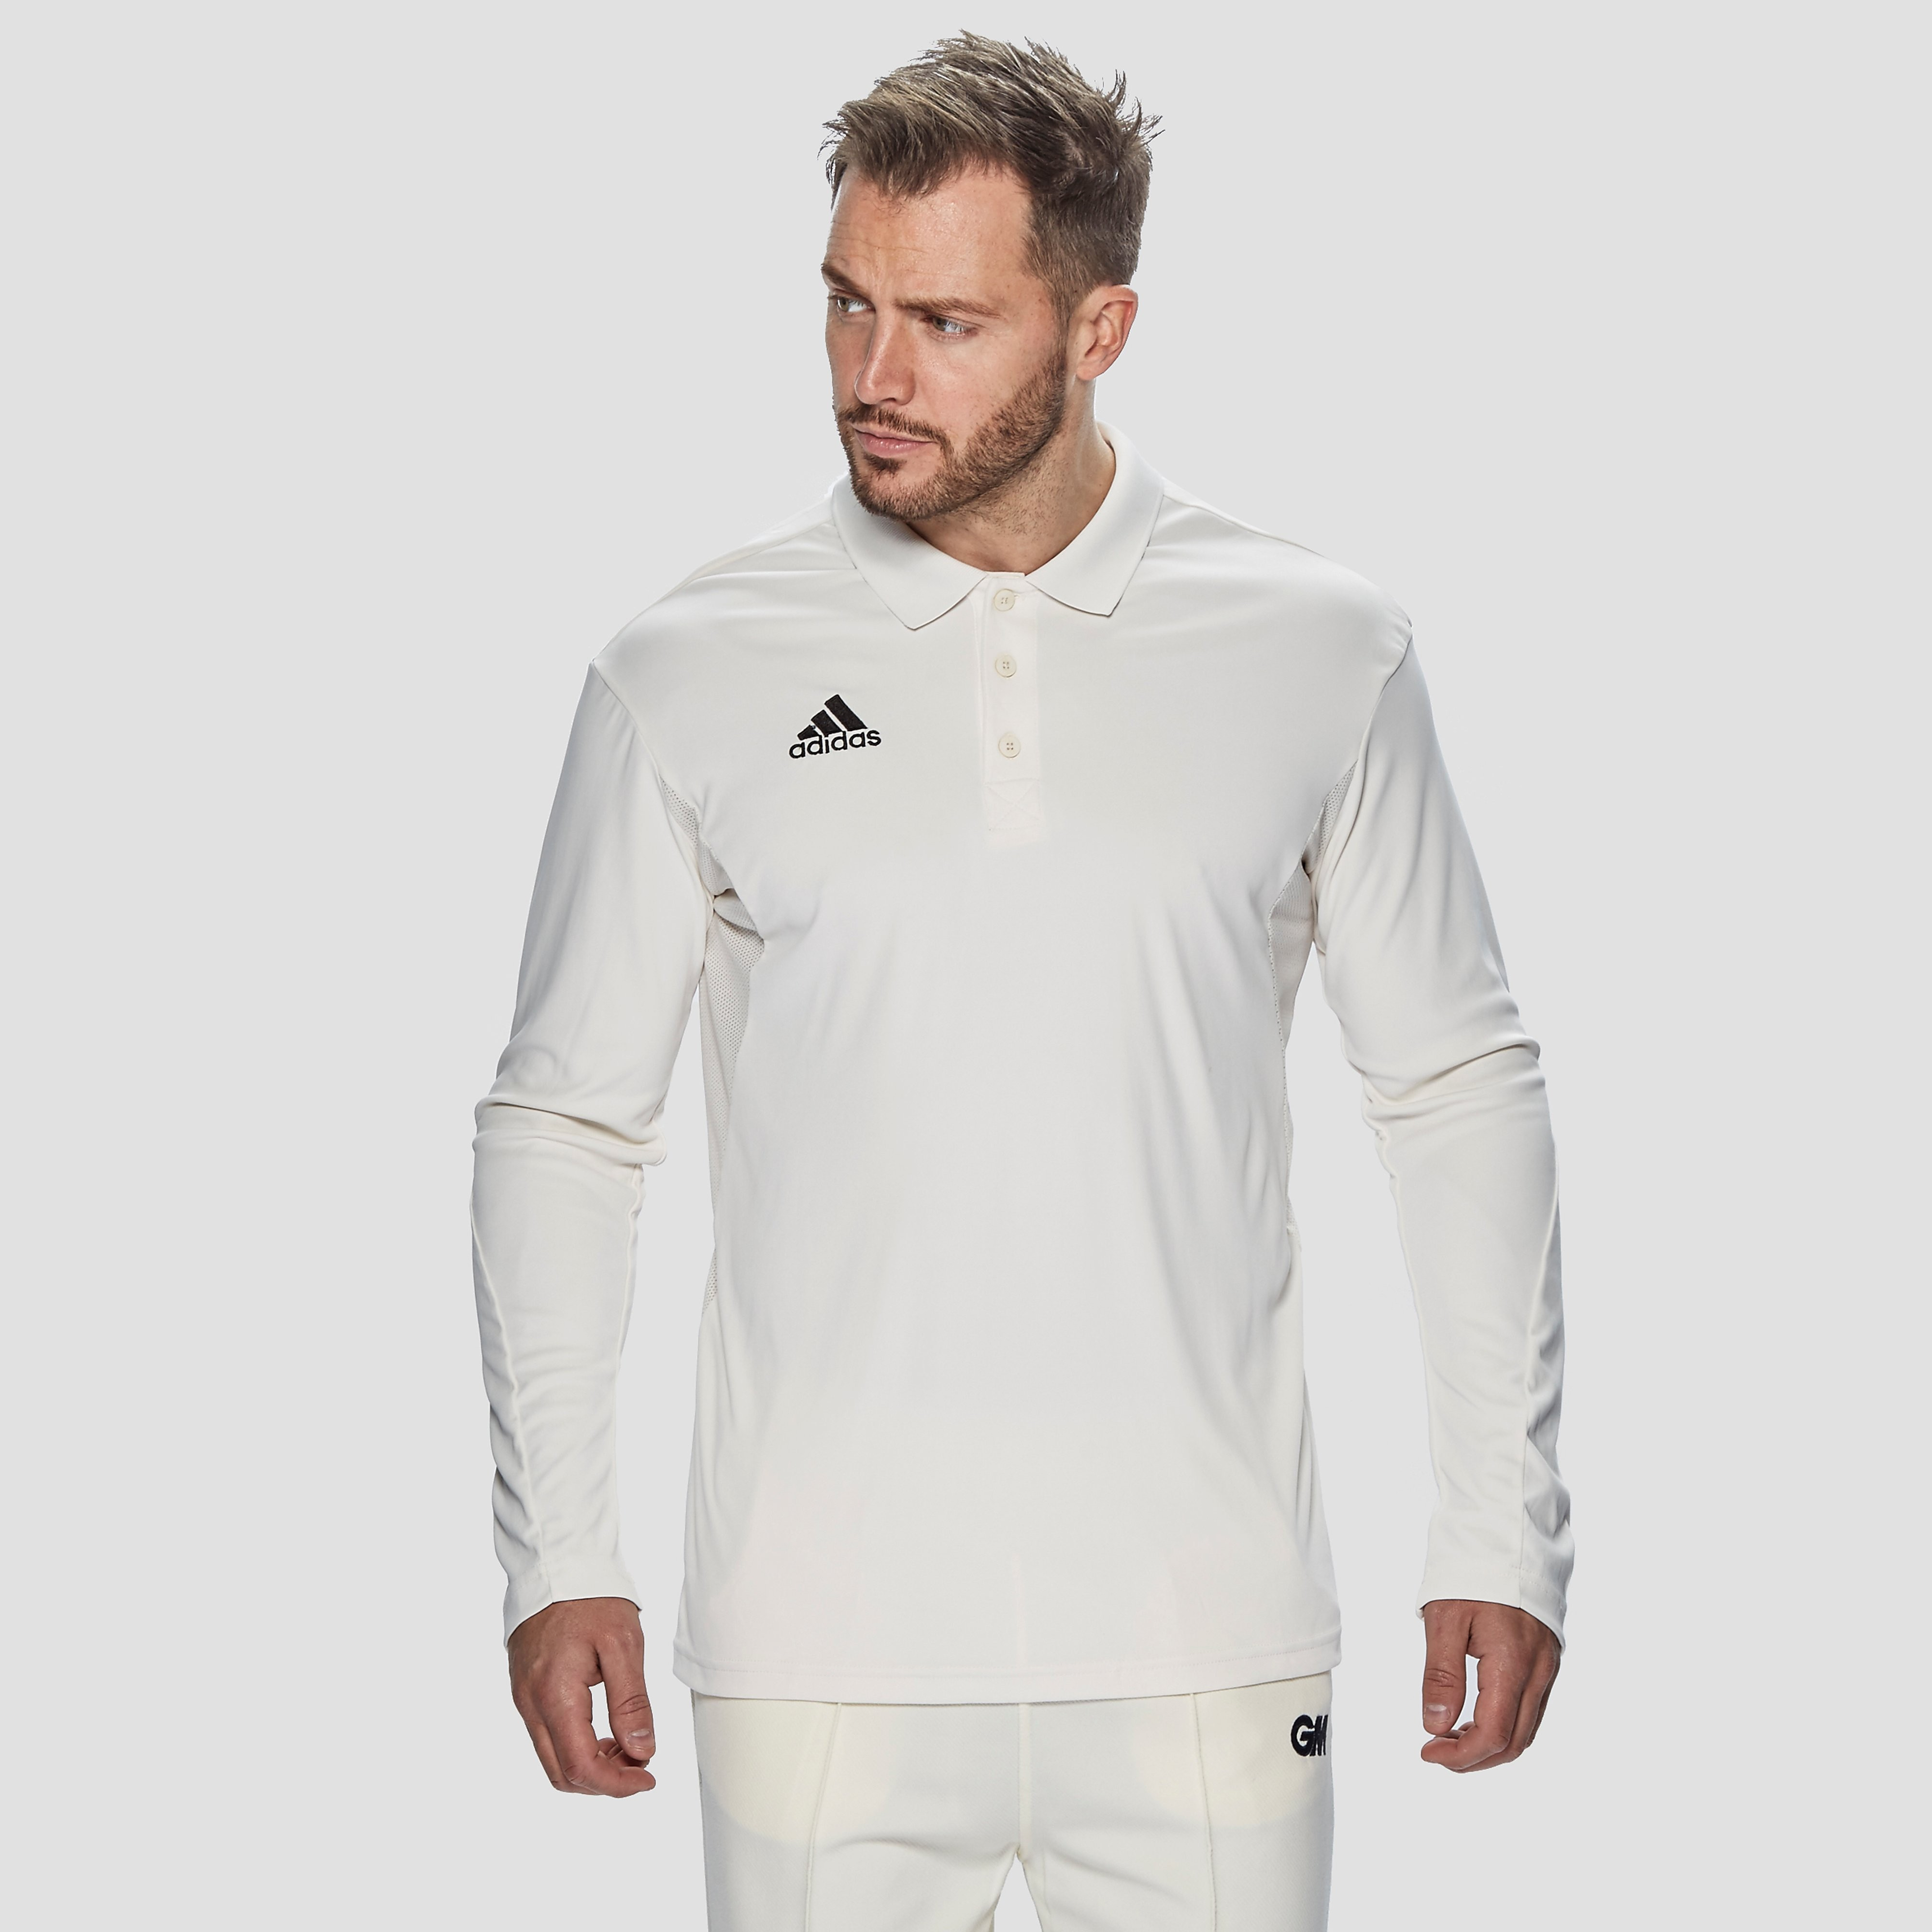 adidas Howzat Long Sleeve Men's Playing Shirt